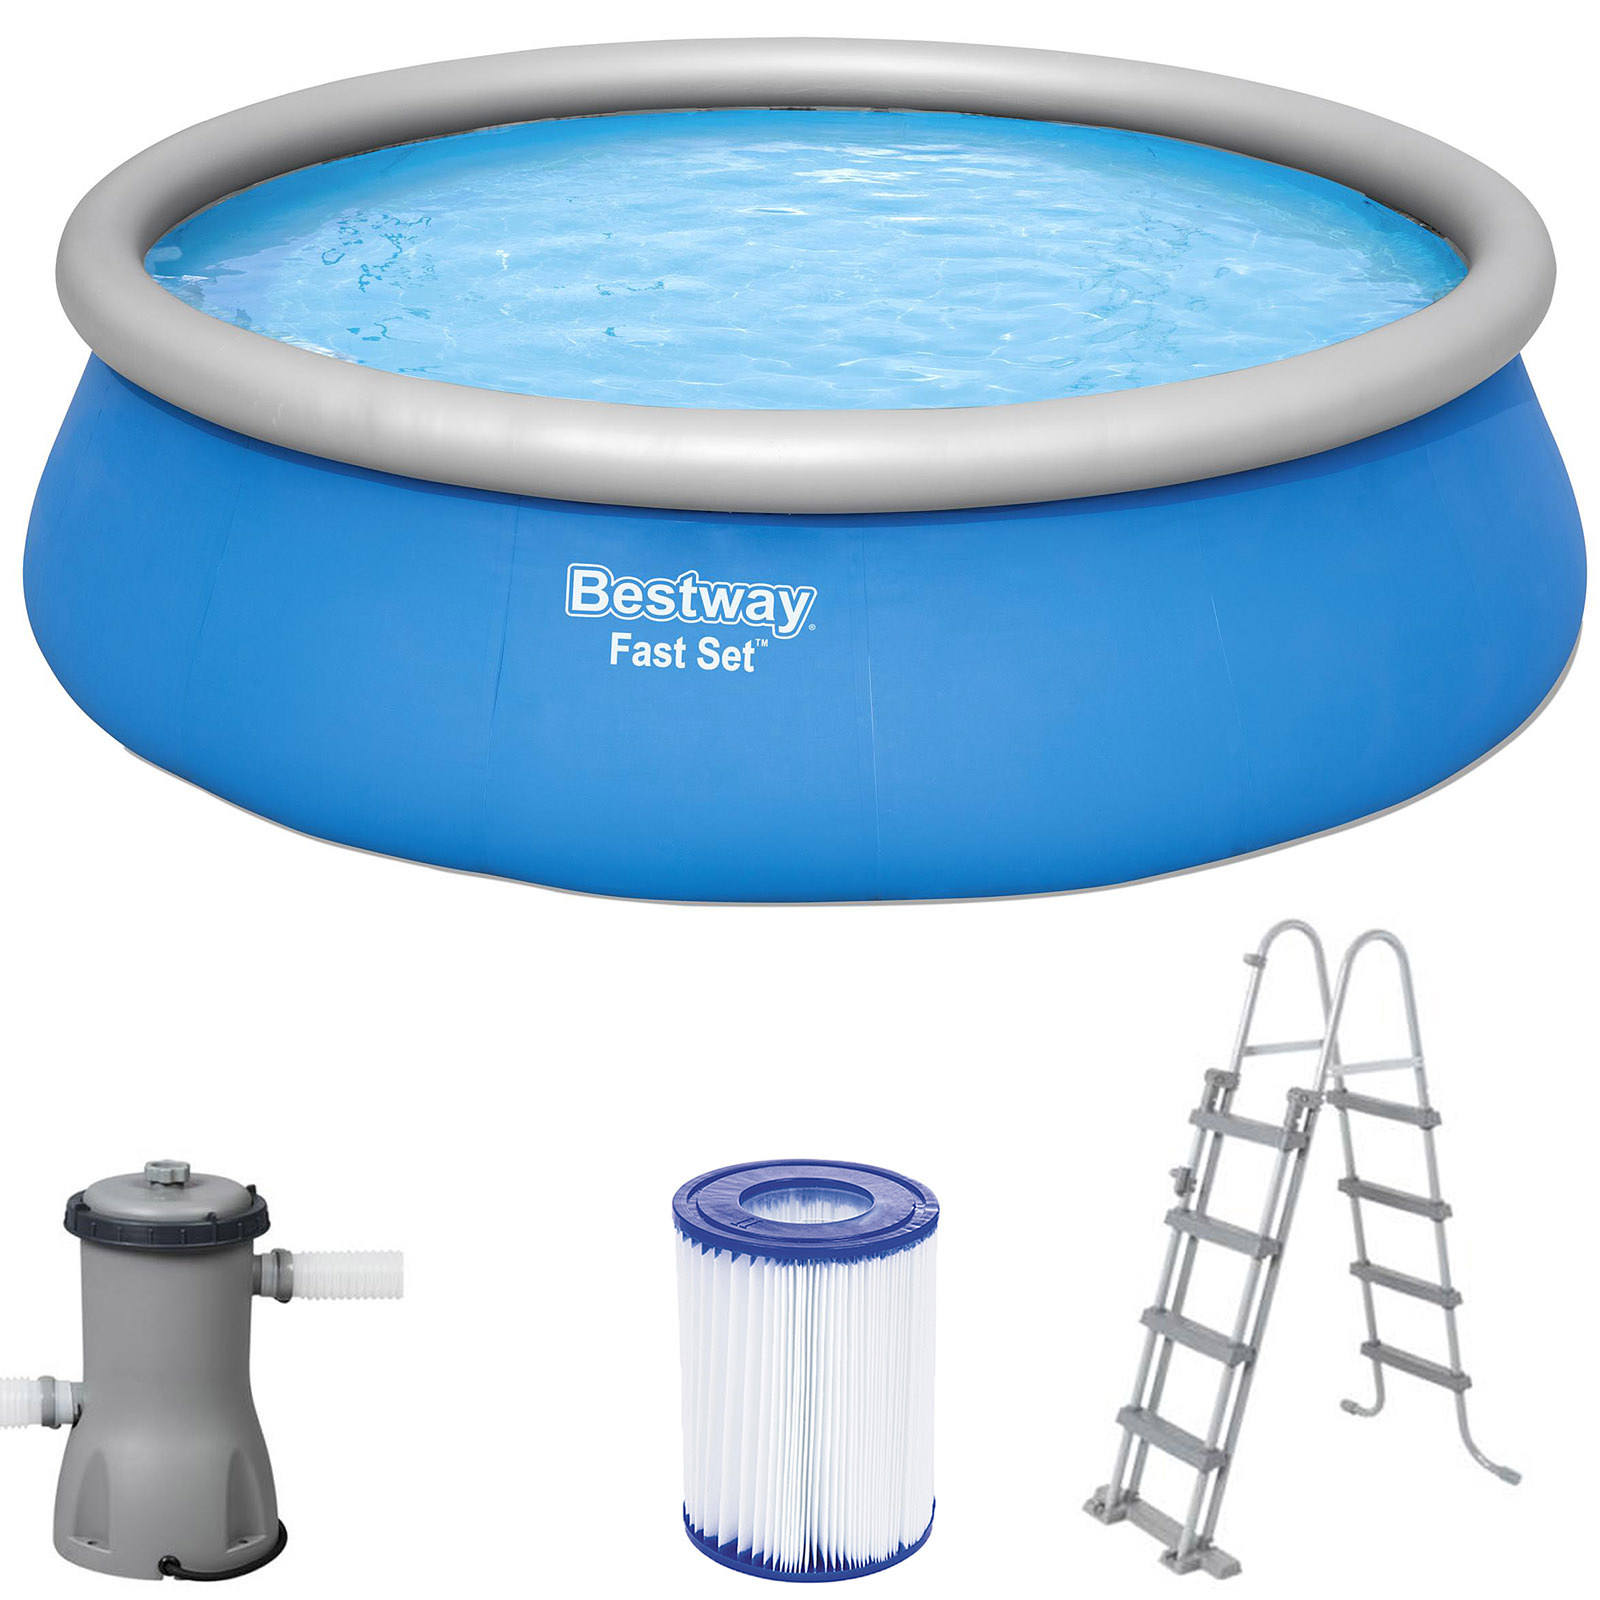 bestway pool komplettset schwimmbecken swimming pool schwimmbad leiter 457x122cm ebay. Black Bedroom Furniture Sets. Home Design Ideas